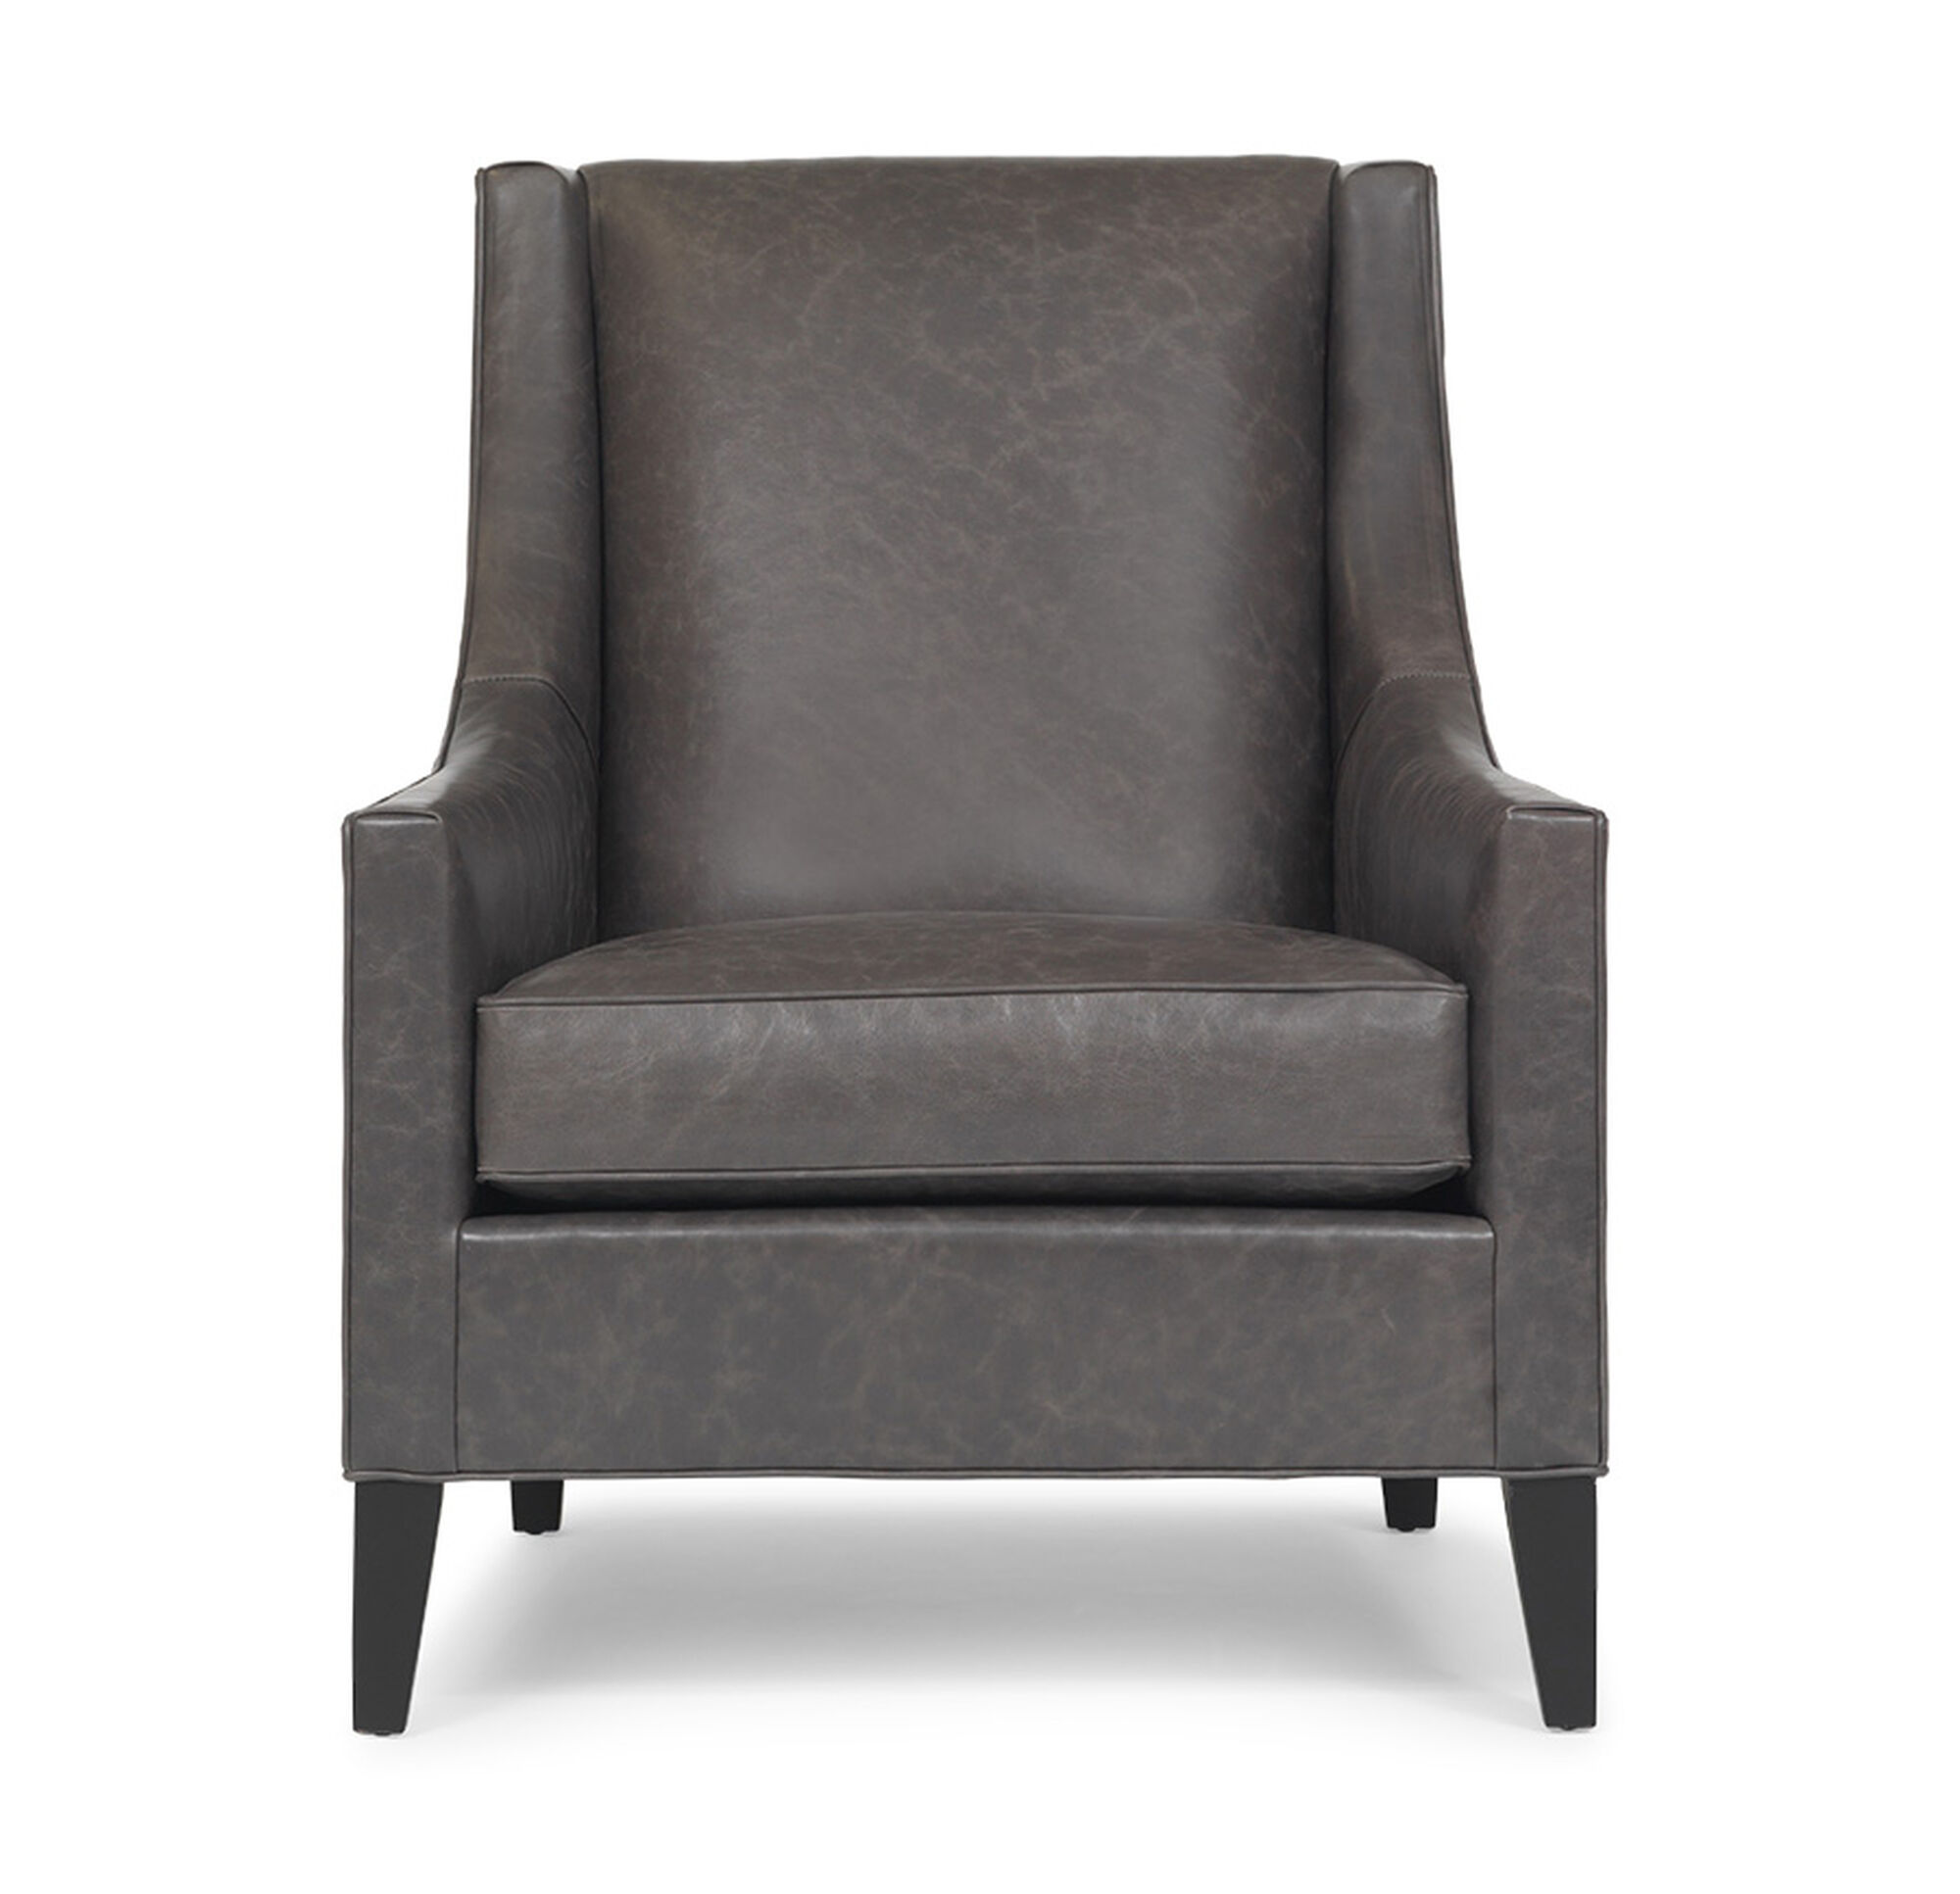 CARA LEATHER TALL CHAIR